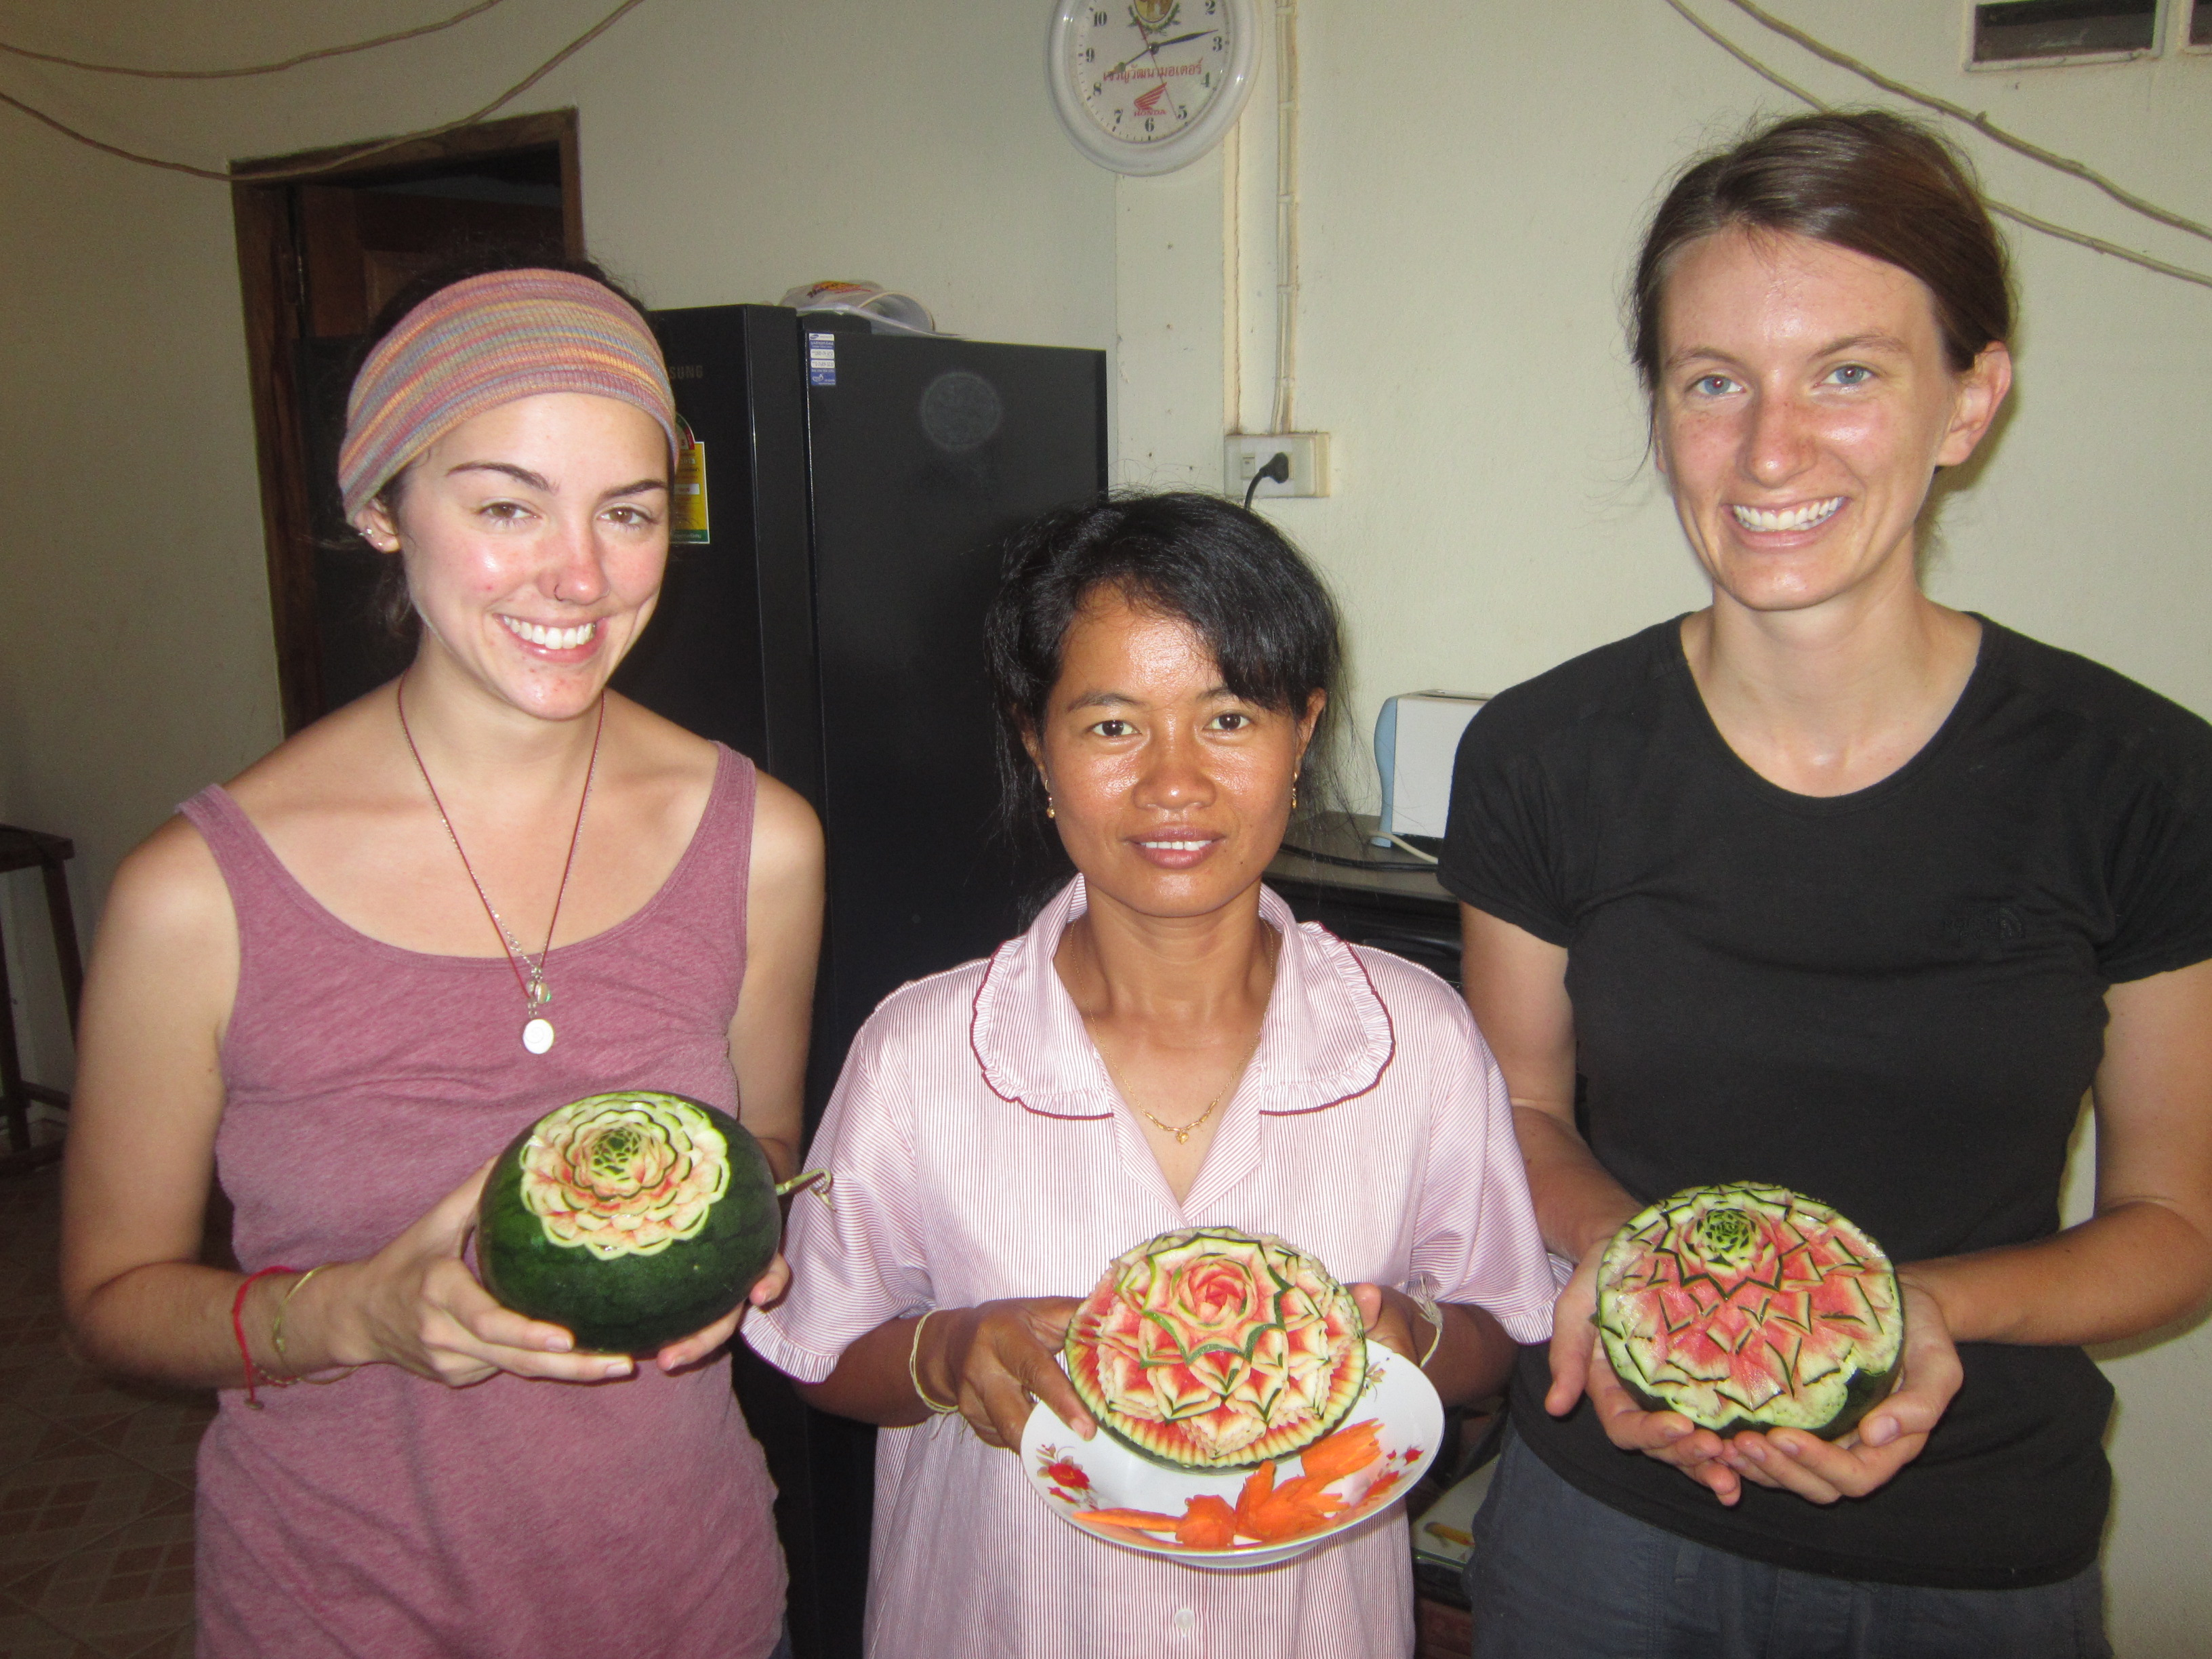 Carving watermelons in Nong Weang, Thailand.